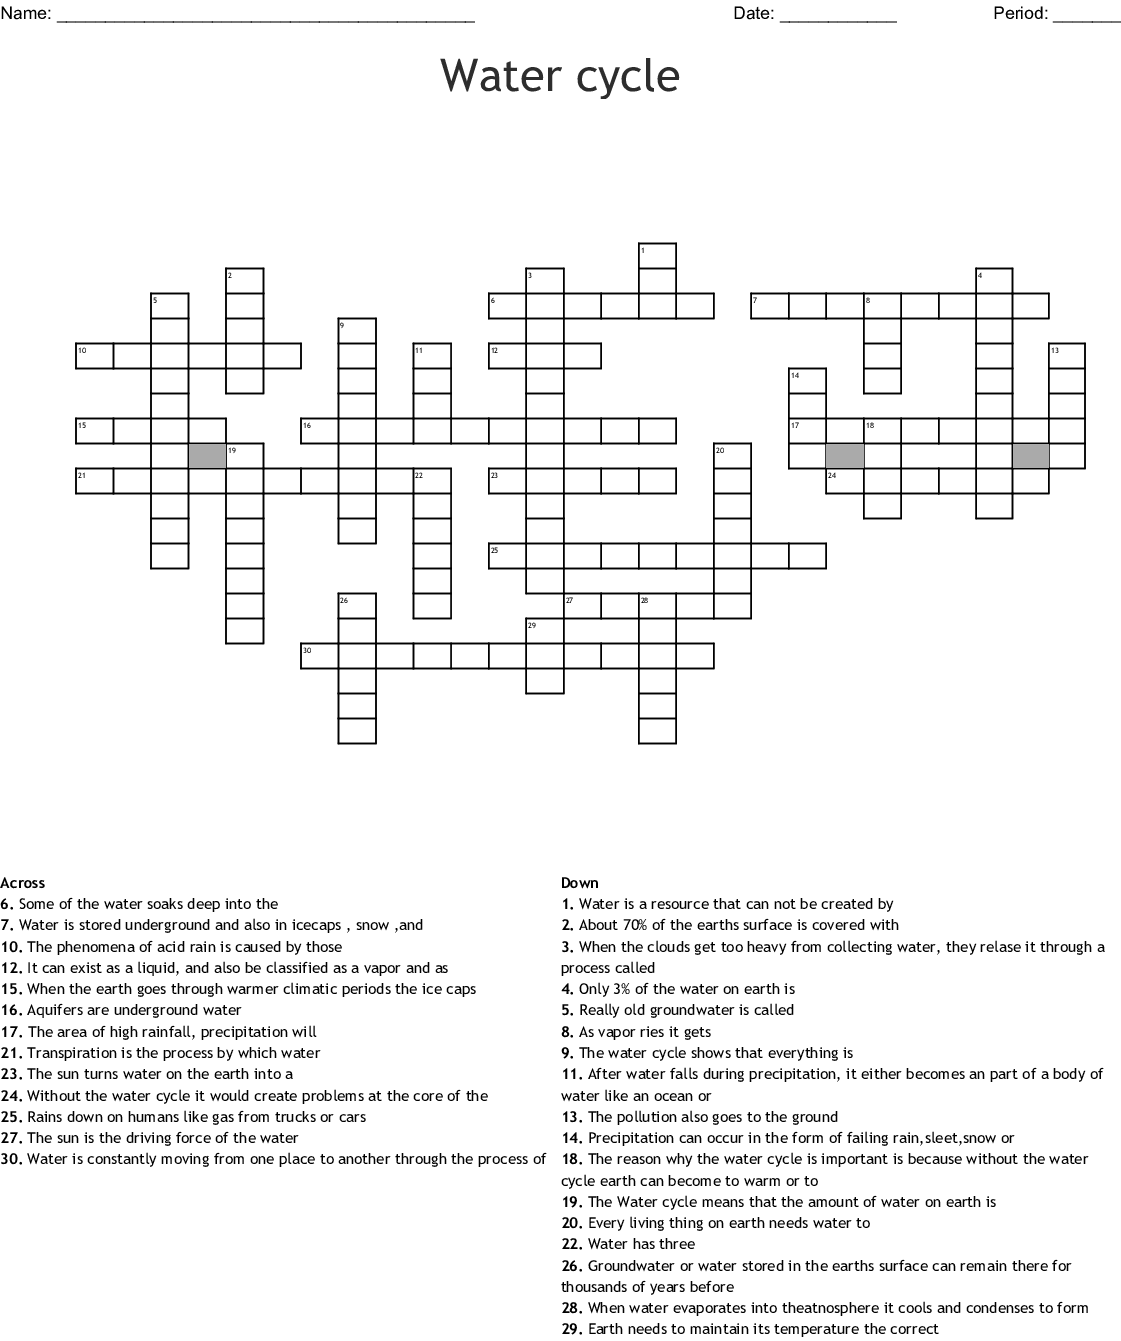 The Water Cycle Crossword